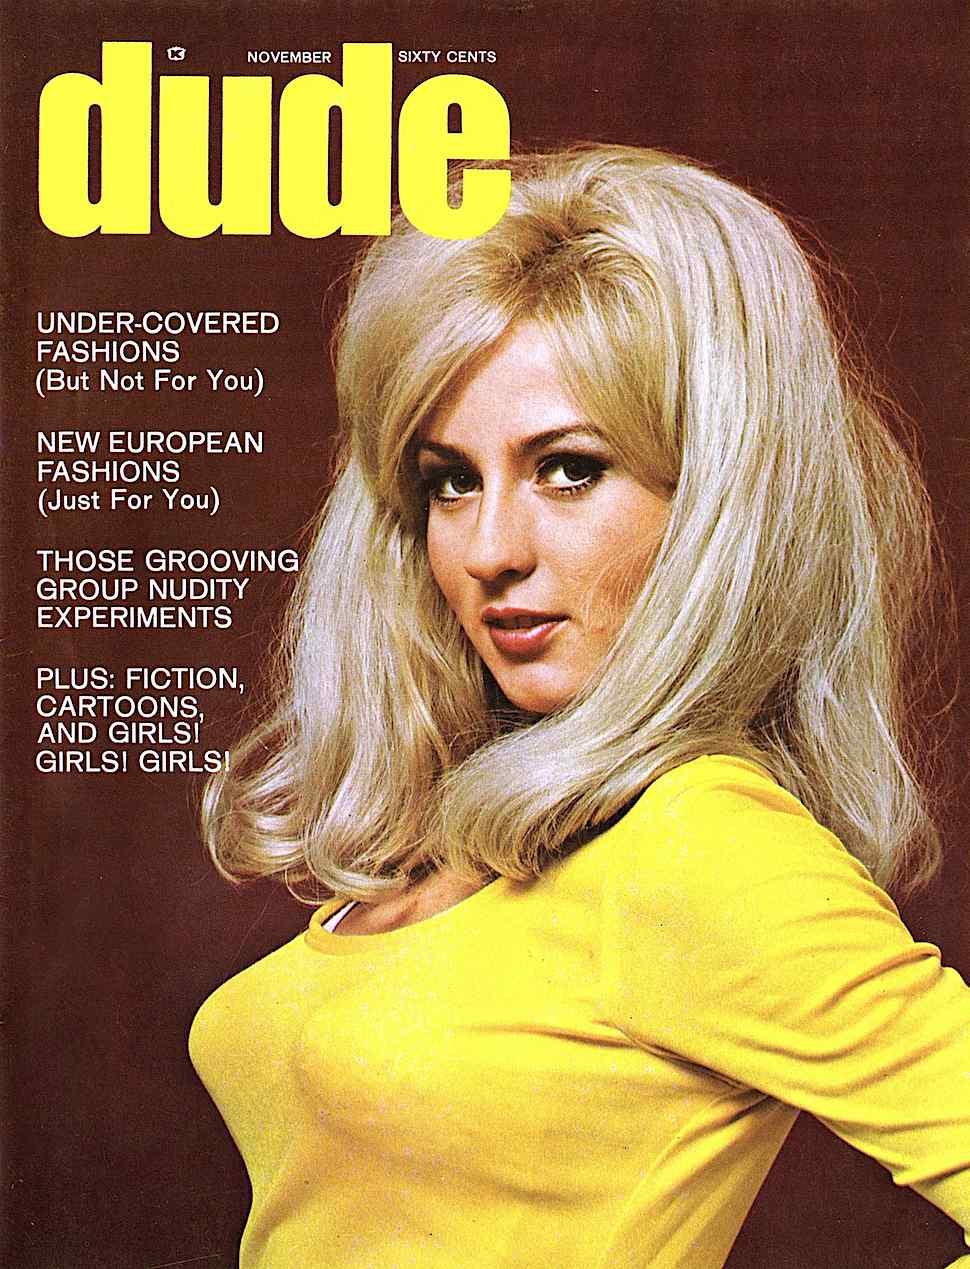 Dude Magazine November 1968, a sexy woman in yellow